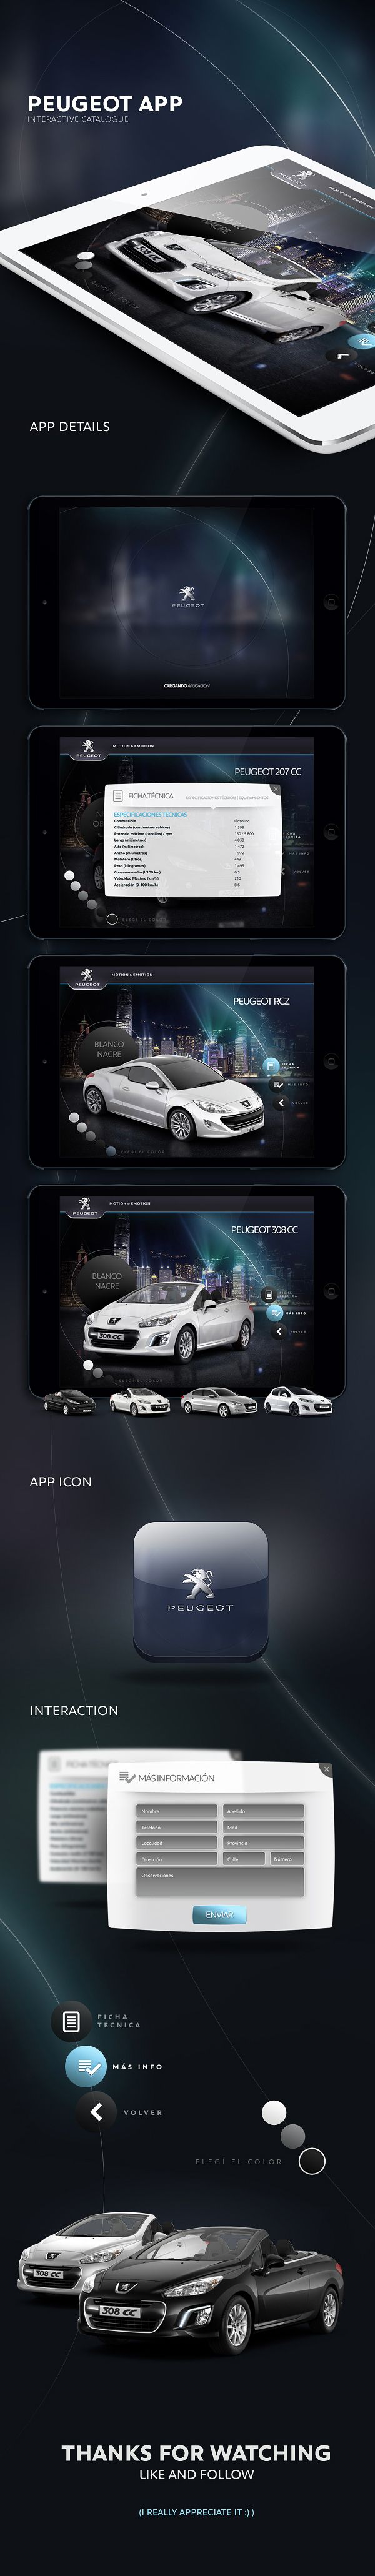 Peugeot | App by Lucas Nikitczuk, via Behance